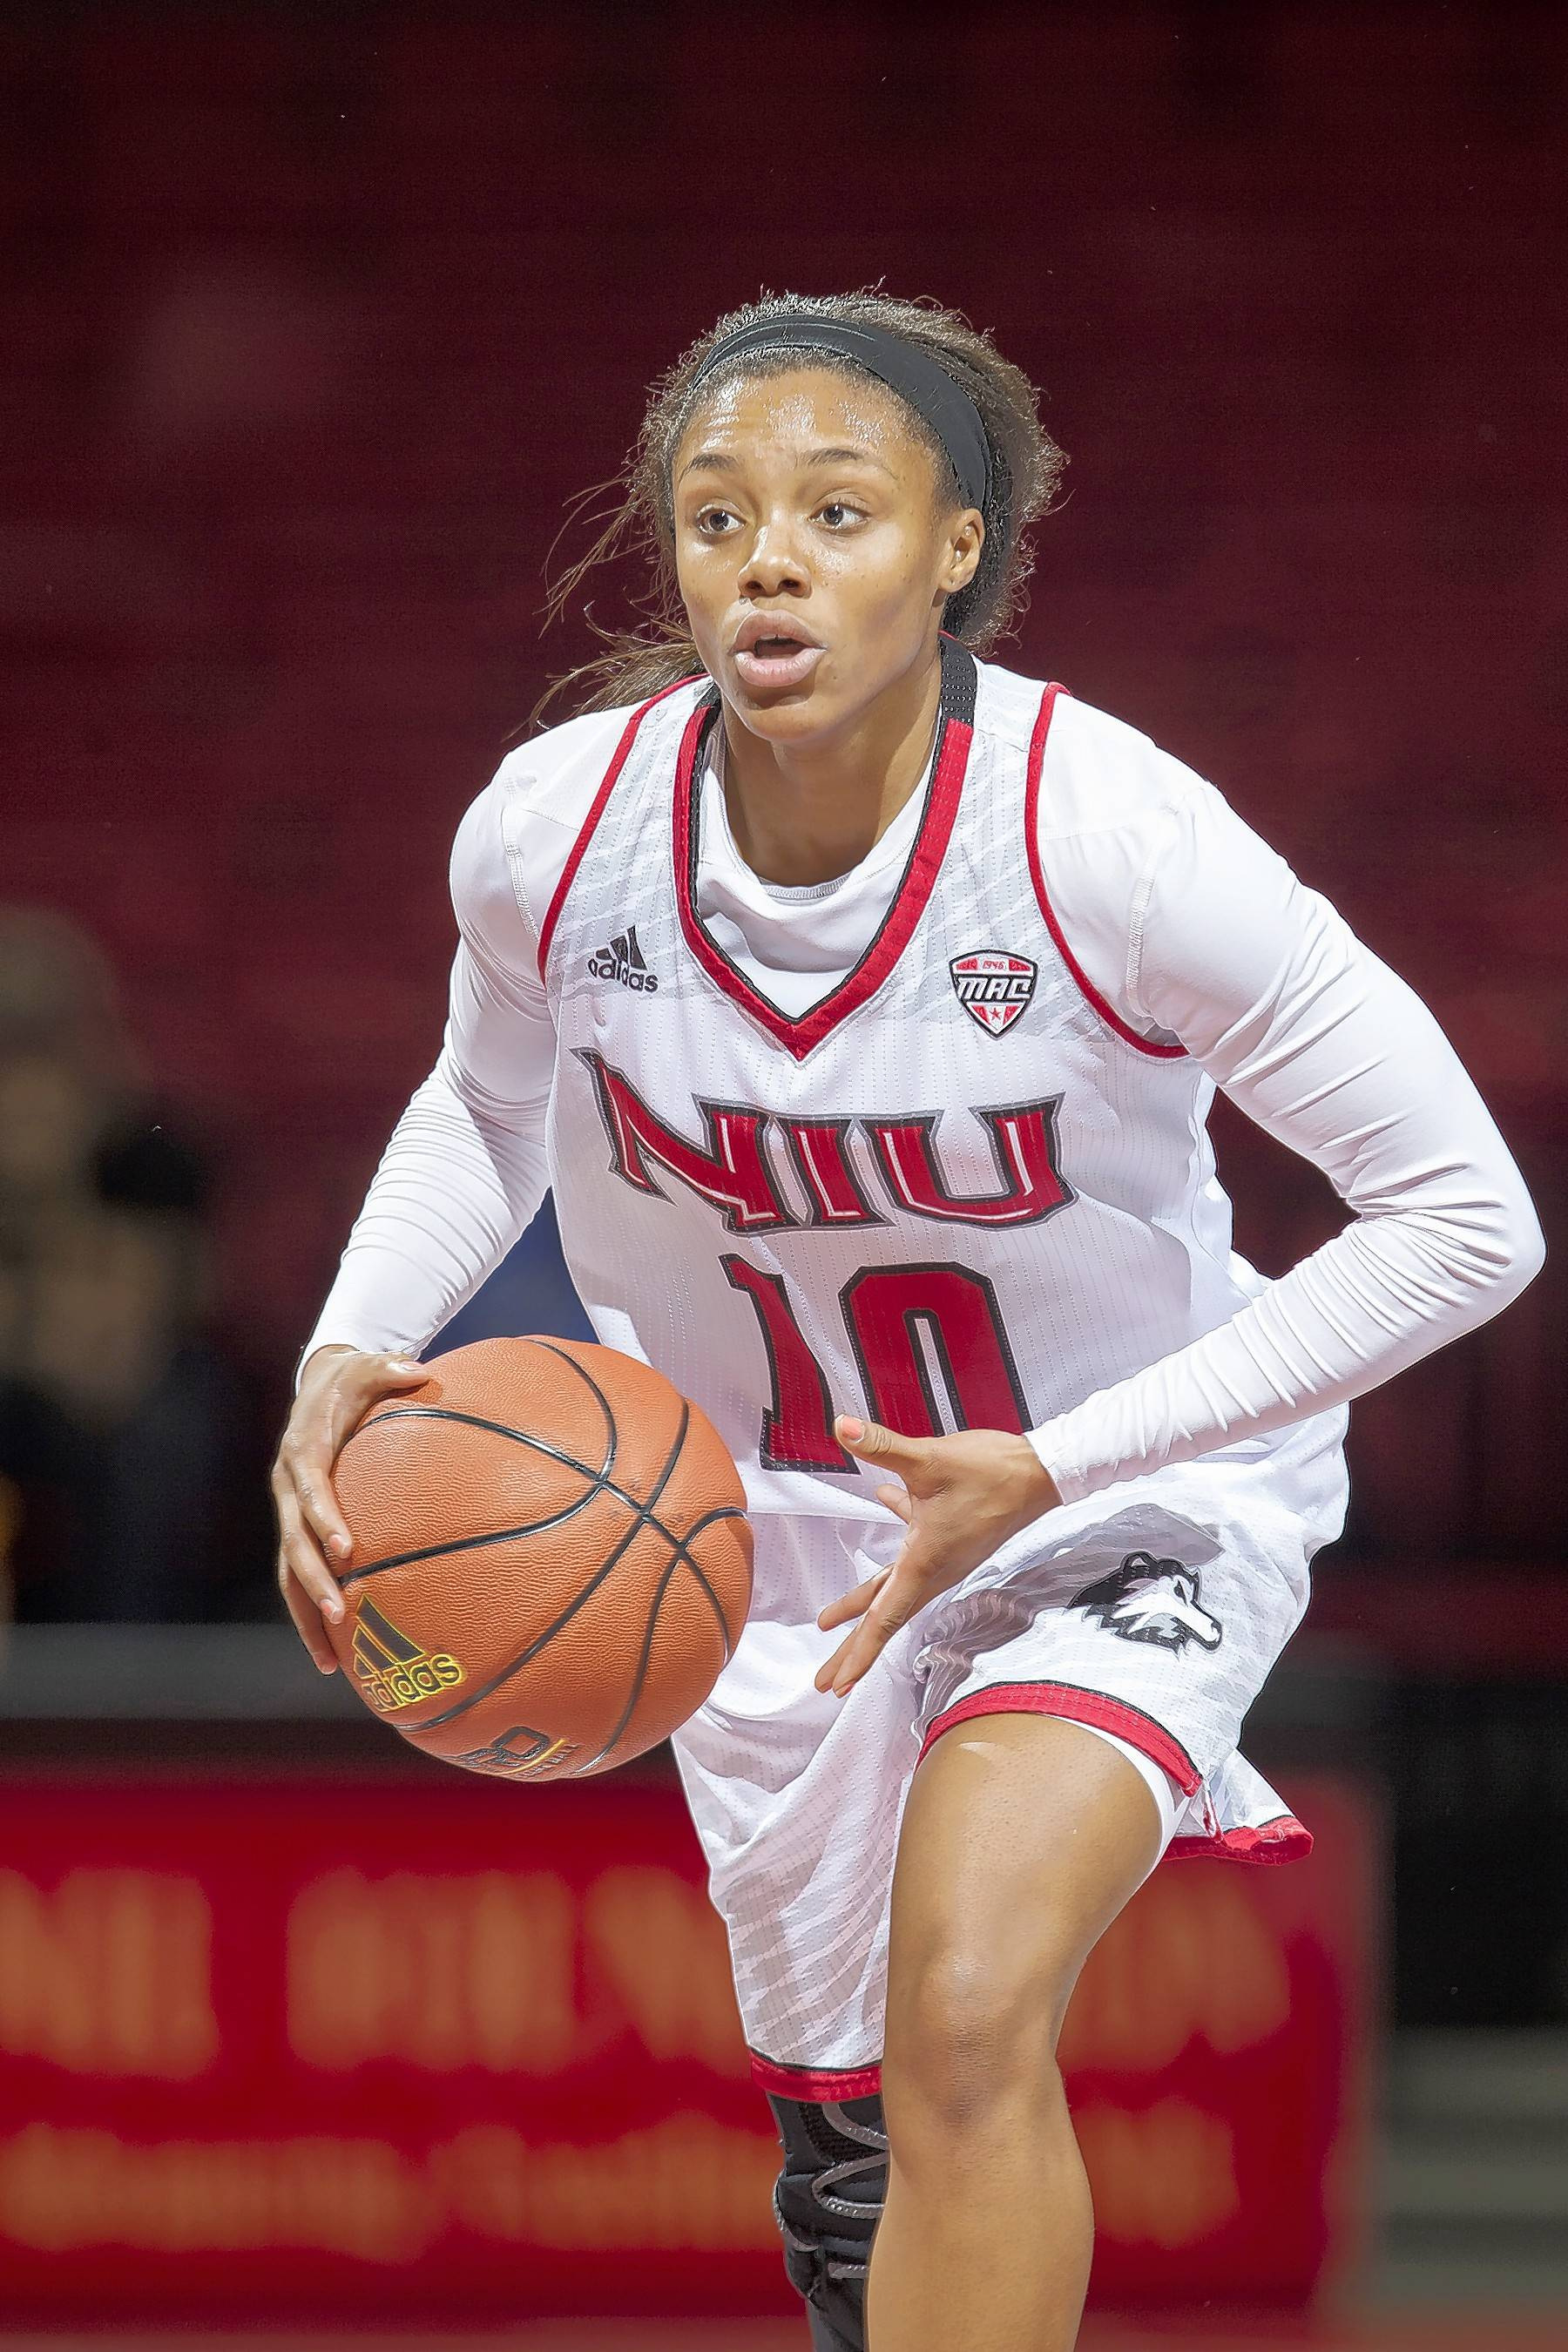 After coming back from knee surgery, Northern Illinois guard Shavonne Brewer's basketball career ended with major foot surgery in December. She's hopeful it will allow her to pursue a career in law enforcement.